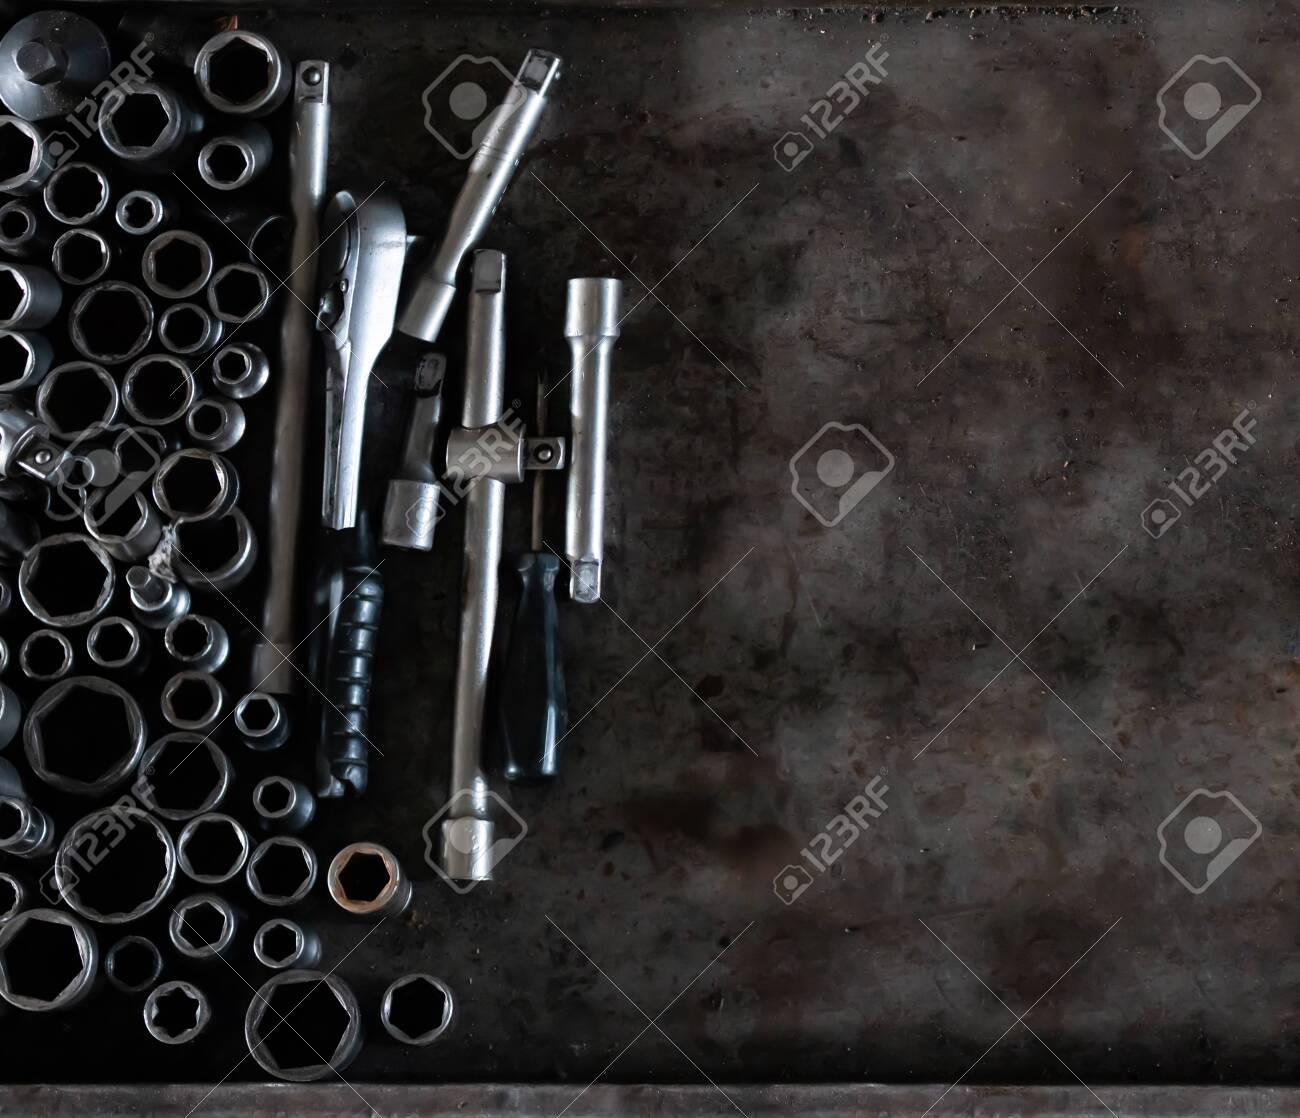 Mechanic tools set on metal background. Vintage style image of blank space on metal, lot of old tools. Copy space. Car service and repair concept. Tools on working table. - 139026700